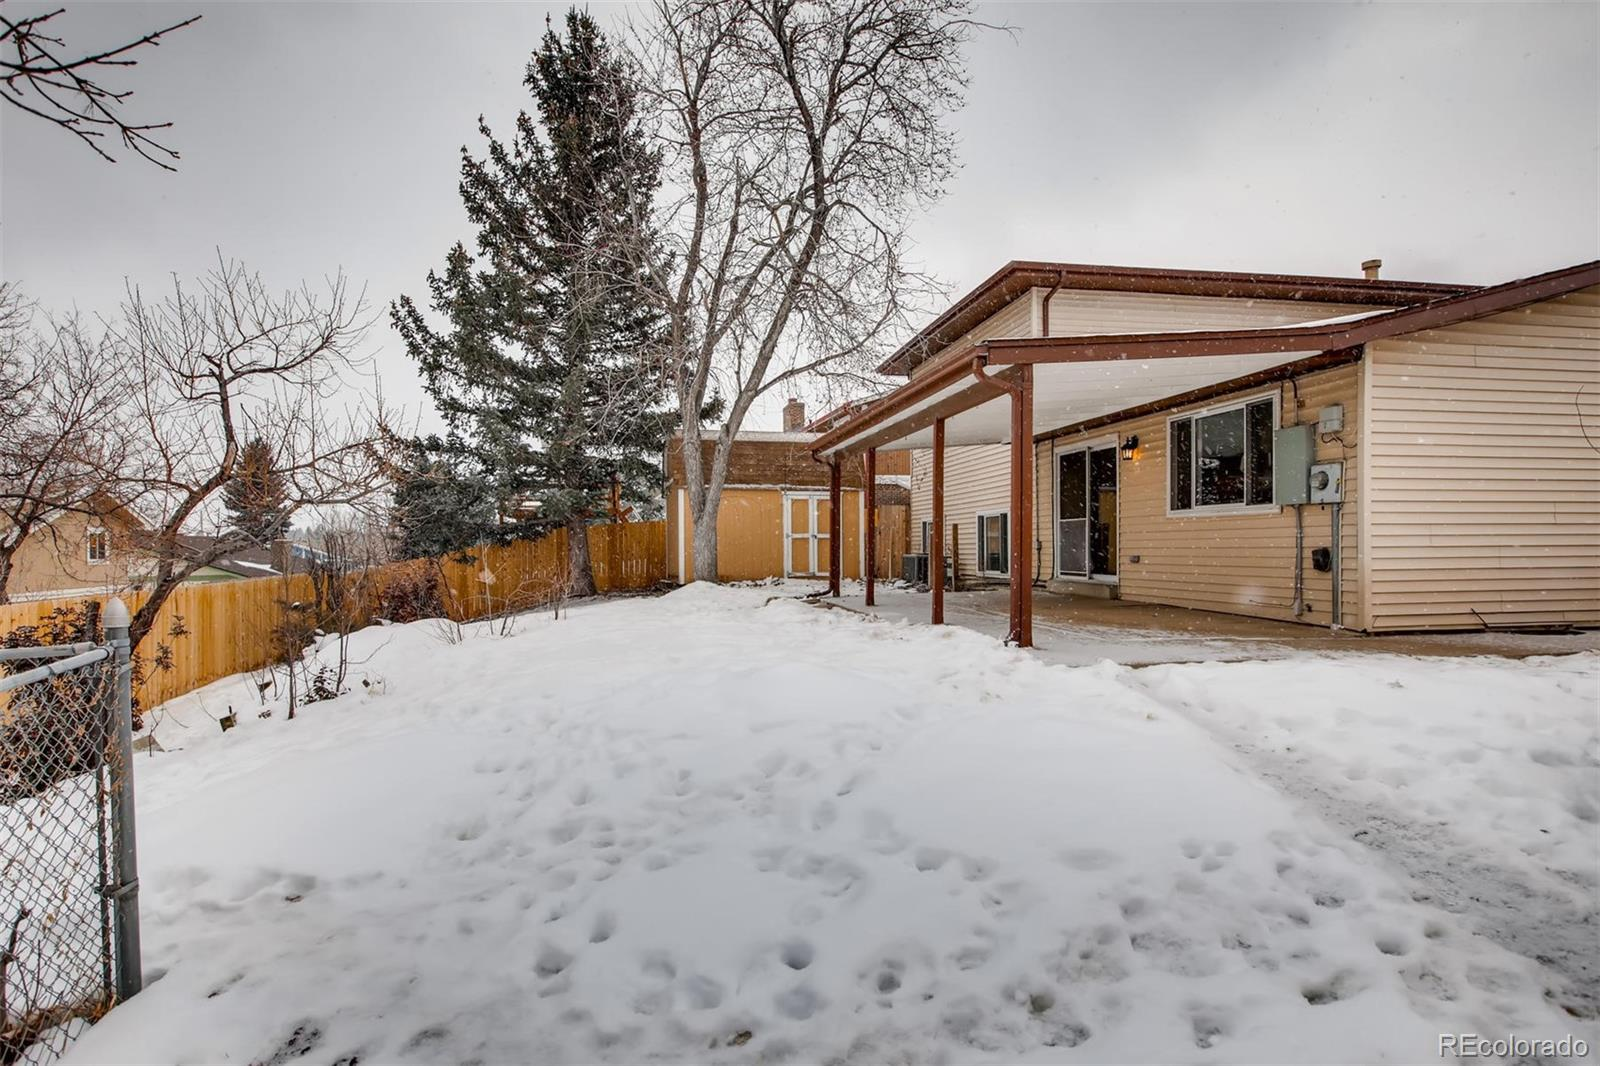 MLS# 2991178 - 28 - 8615 W 78th Place, Arvada, CO 80005